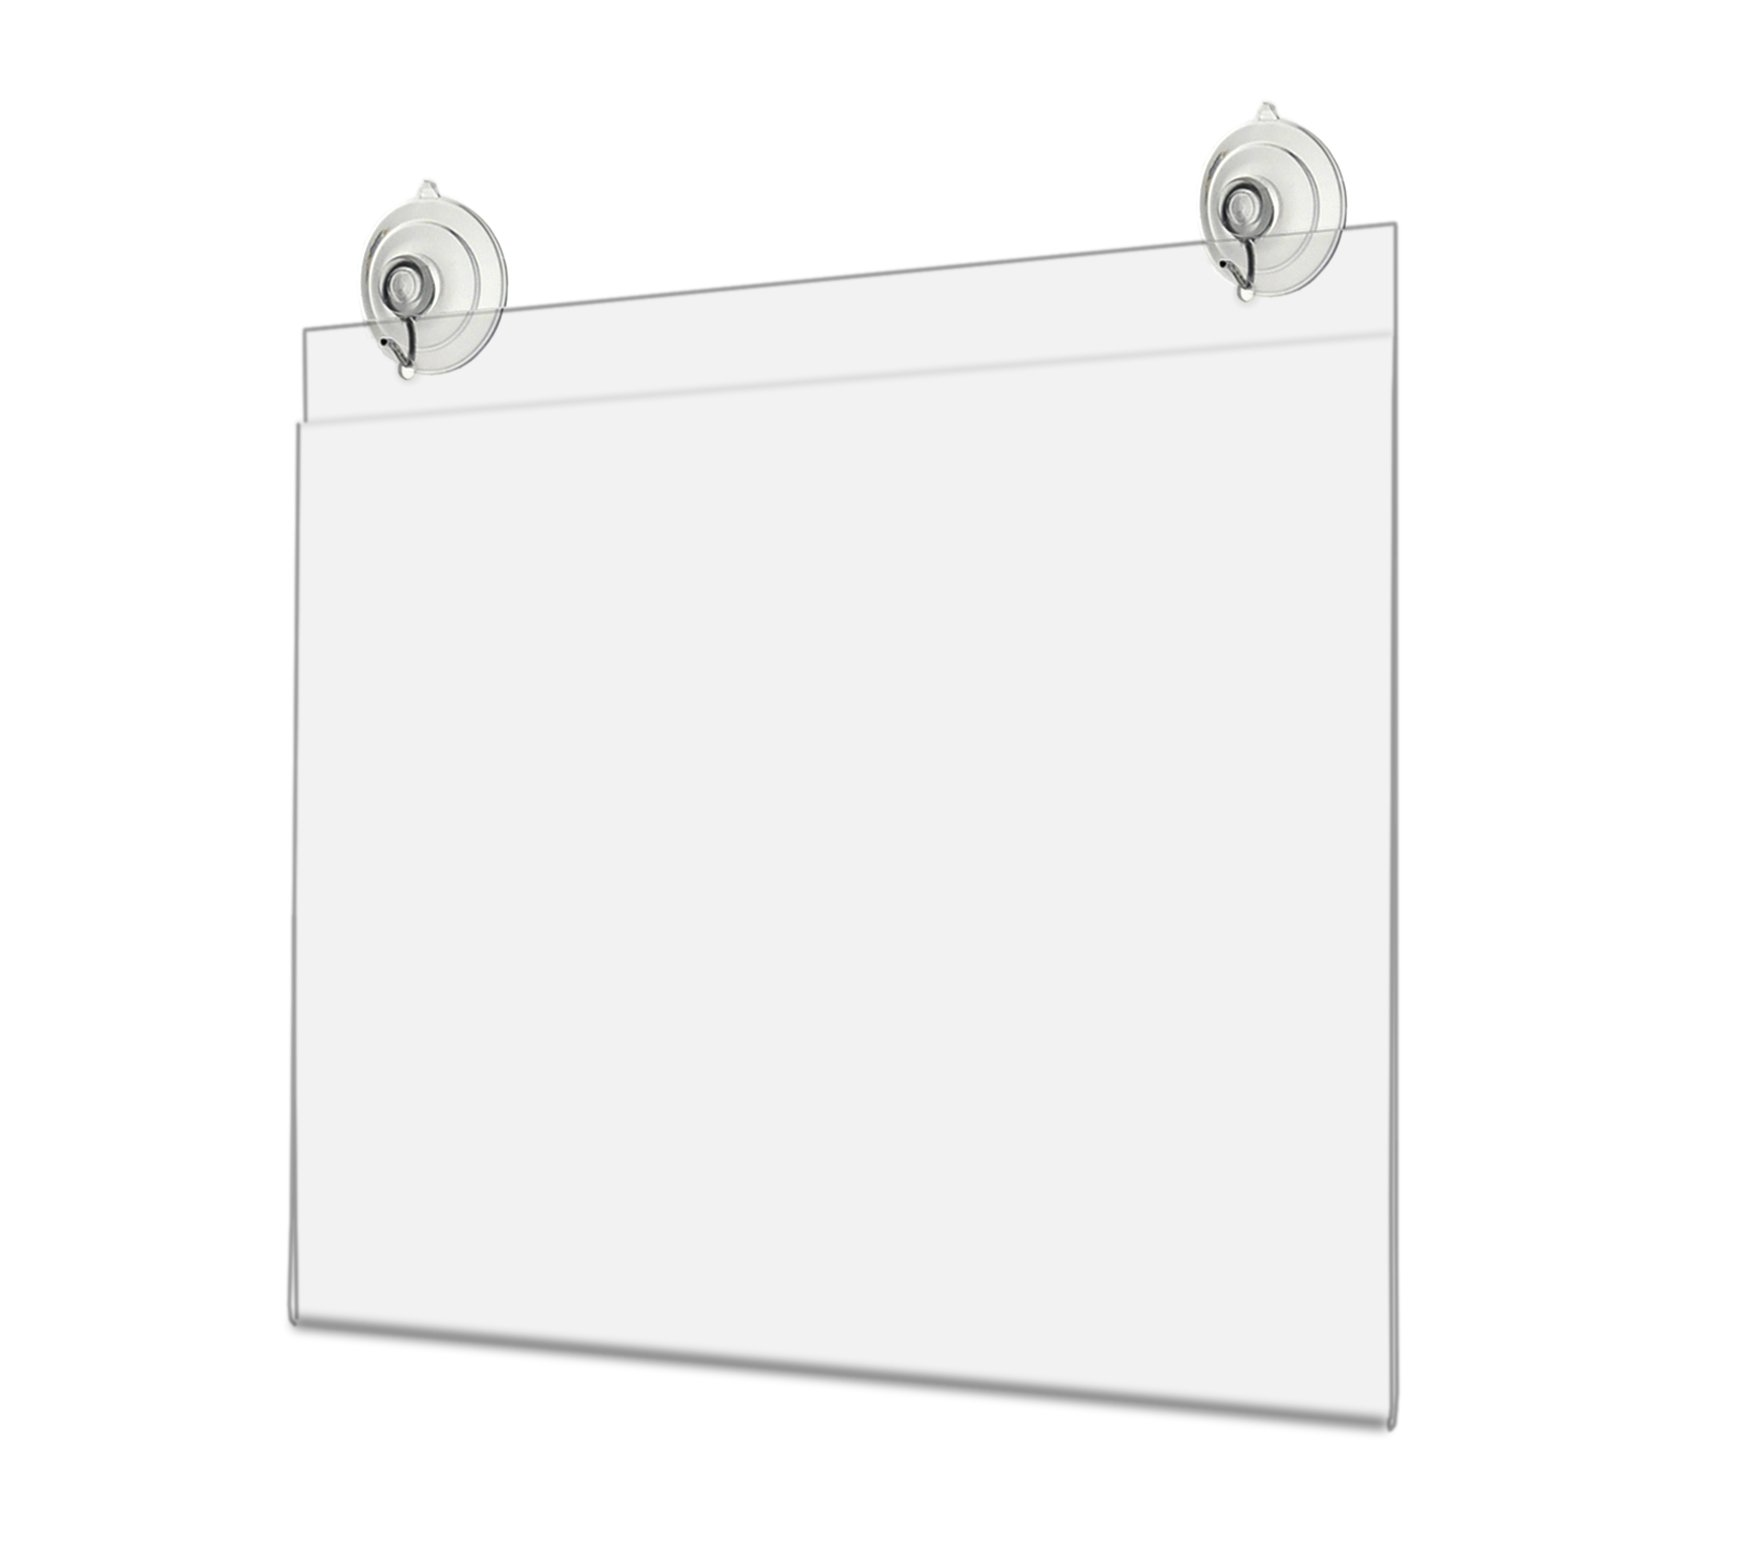 Marketing Holders Window Flyer Frame Glass Mount Advertisement Sign Display Literature Holder with Suction Cups and Hanging Hooks (1, 14''w x 11''h Pack of 24)